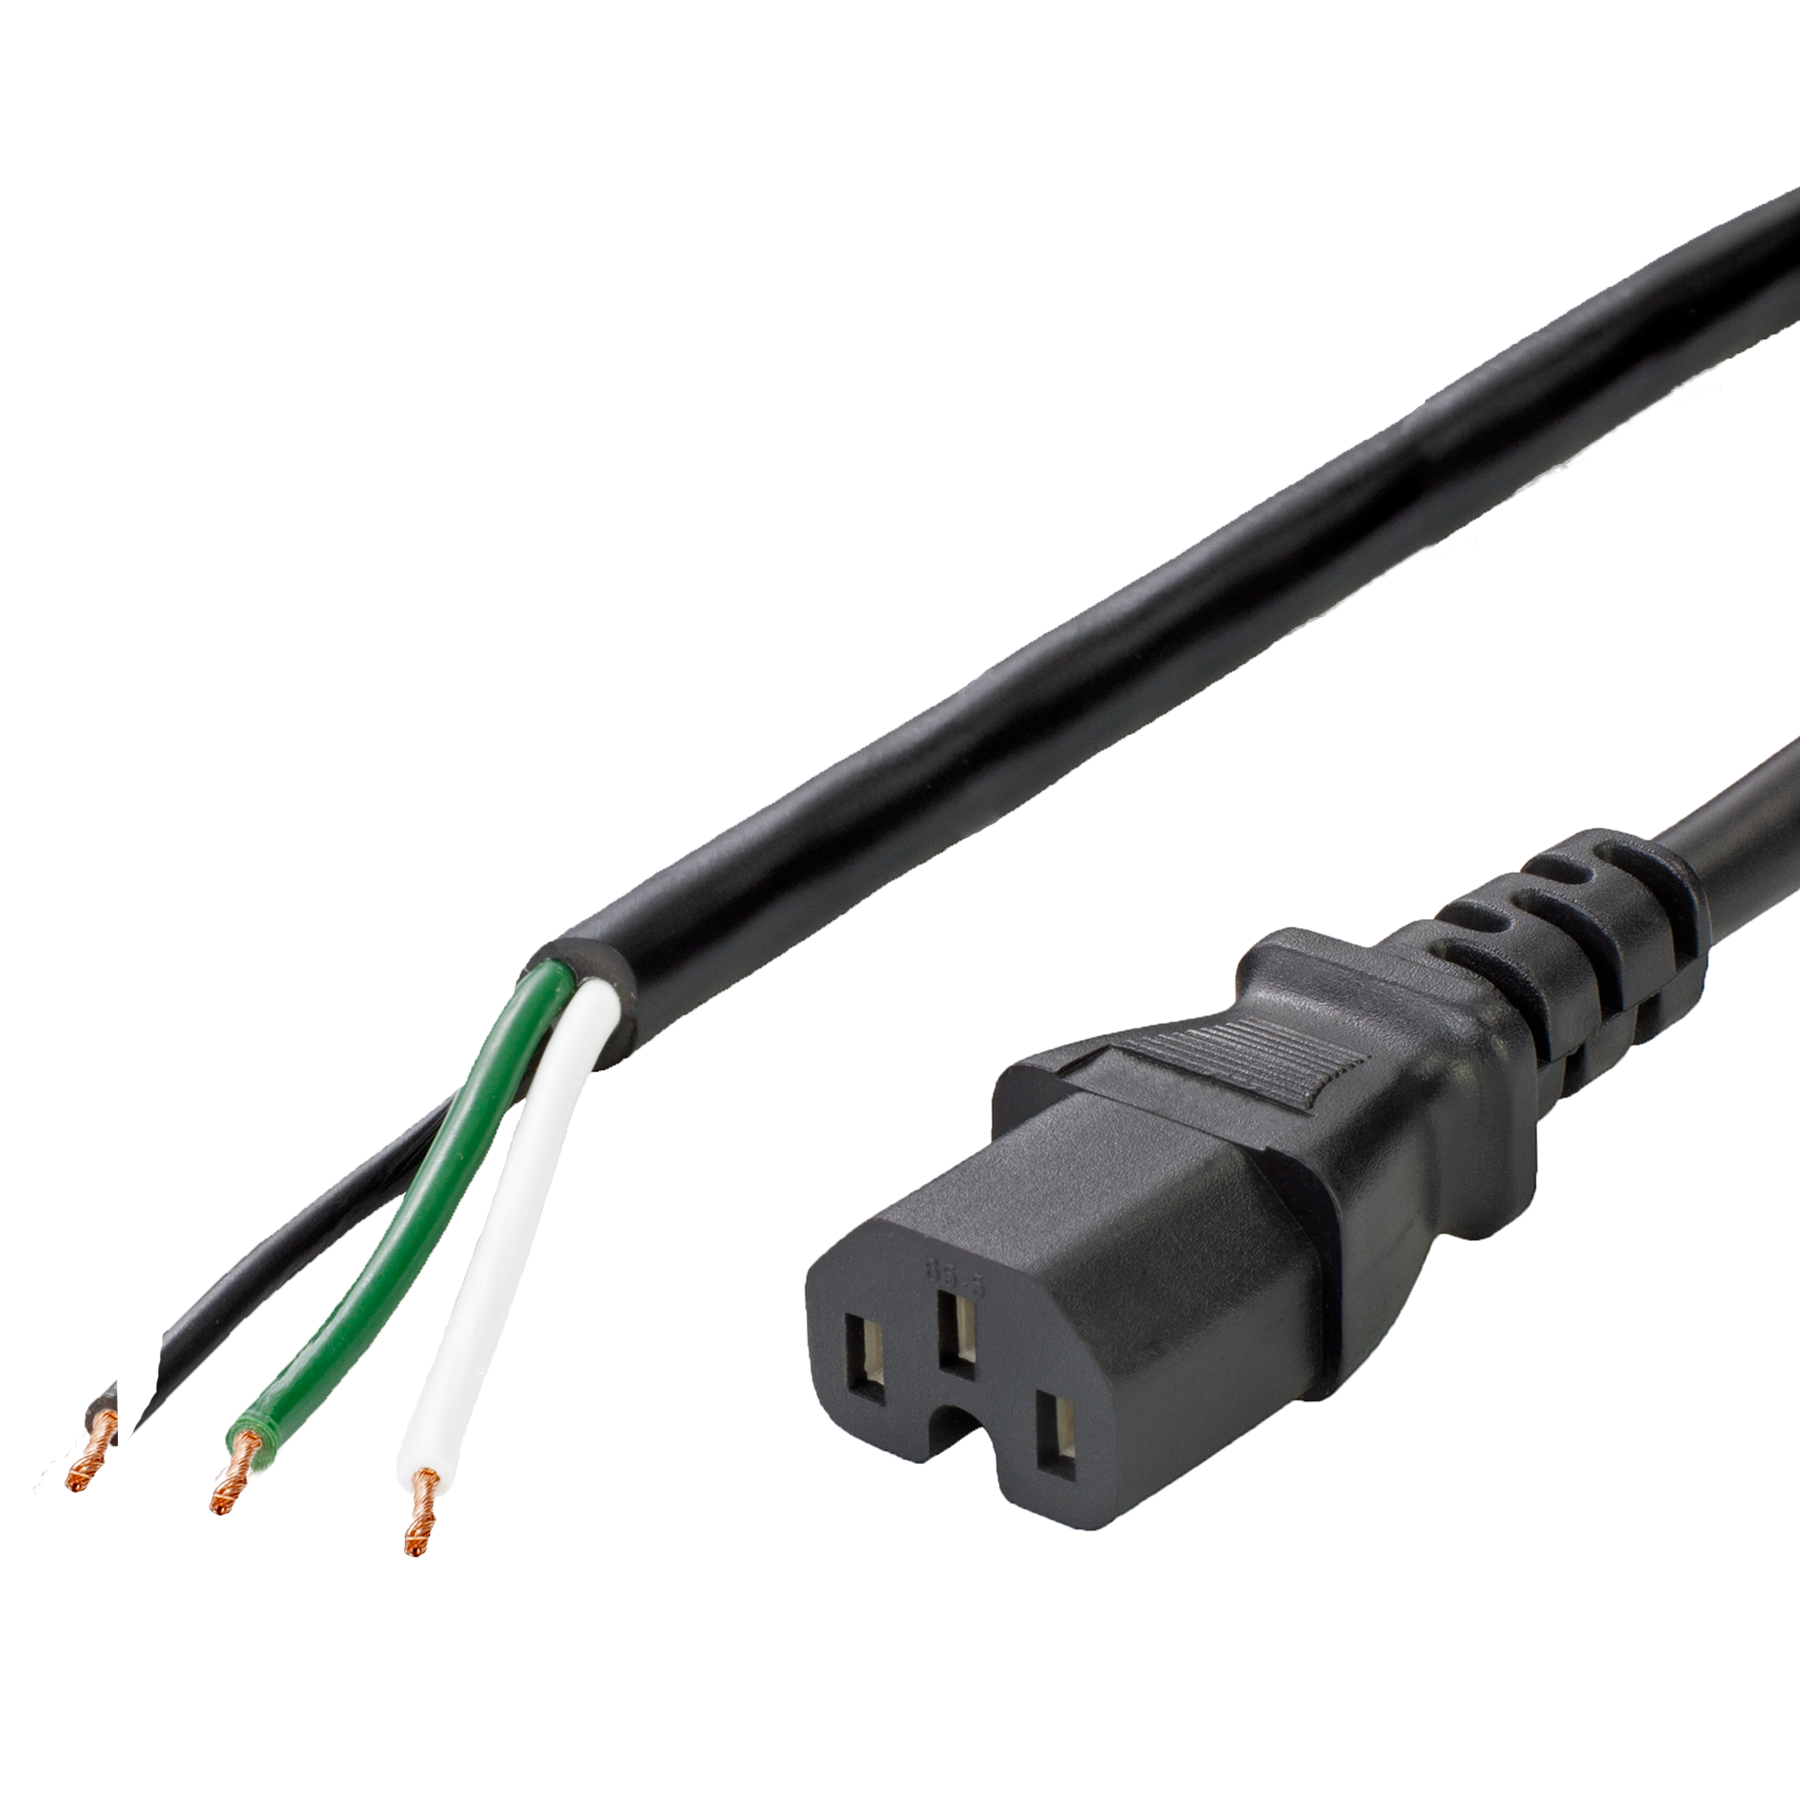 15A IEC 60320 C15 to Open Ended Power Cable, Black, 15FT, NACC